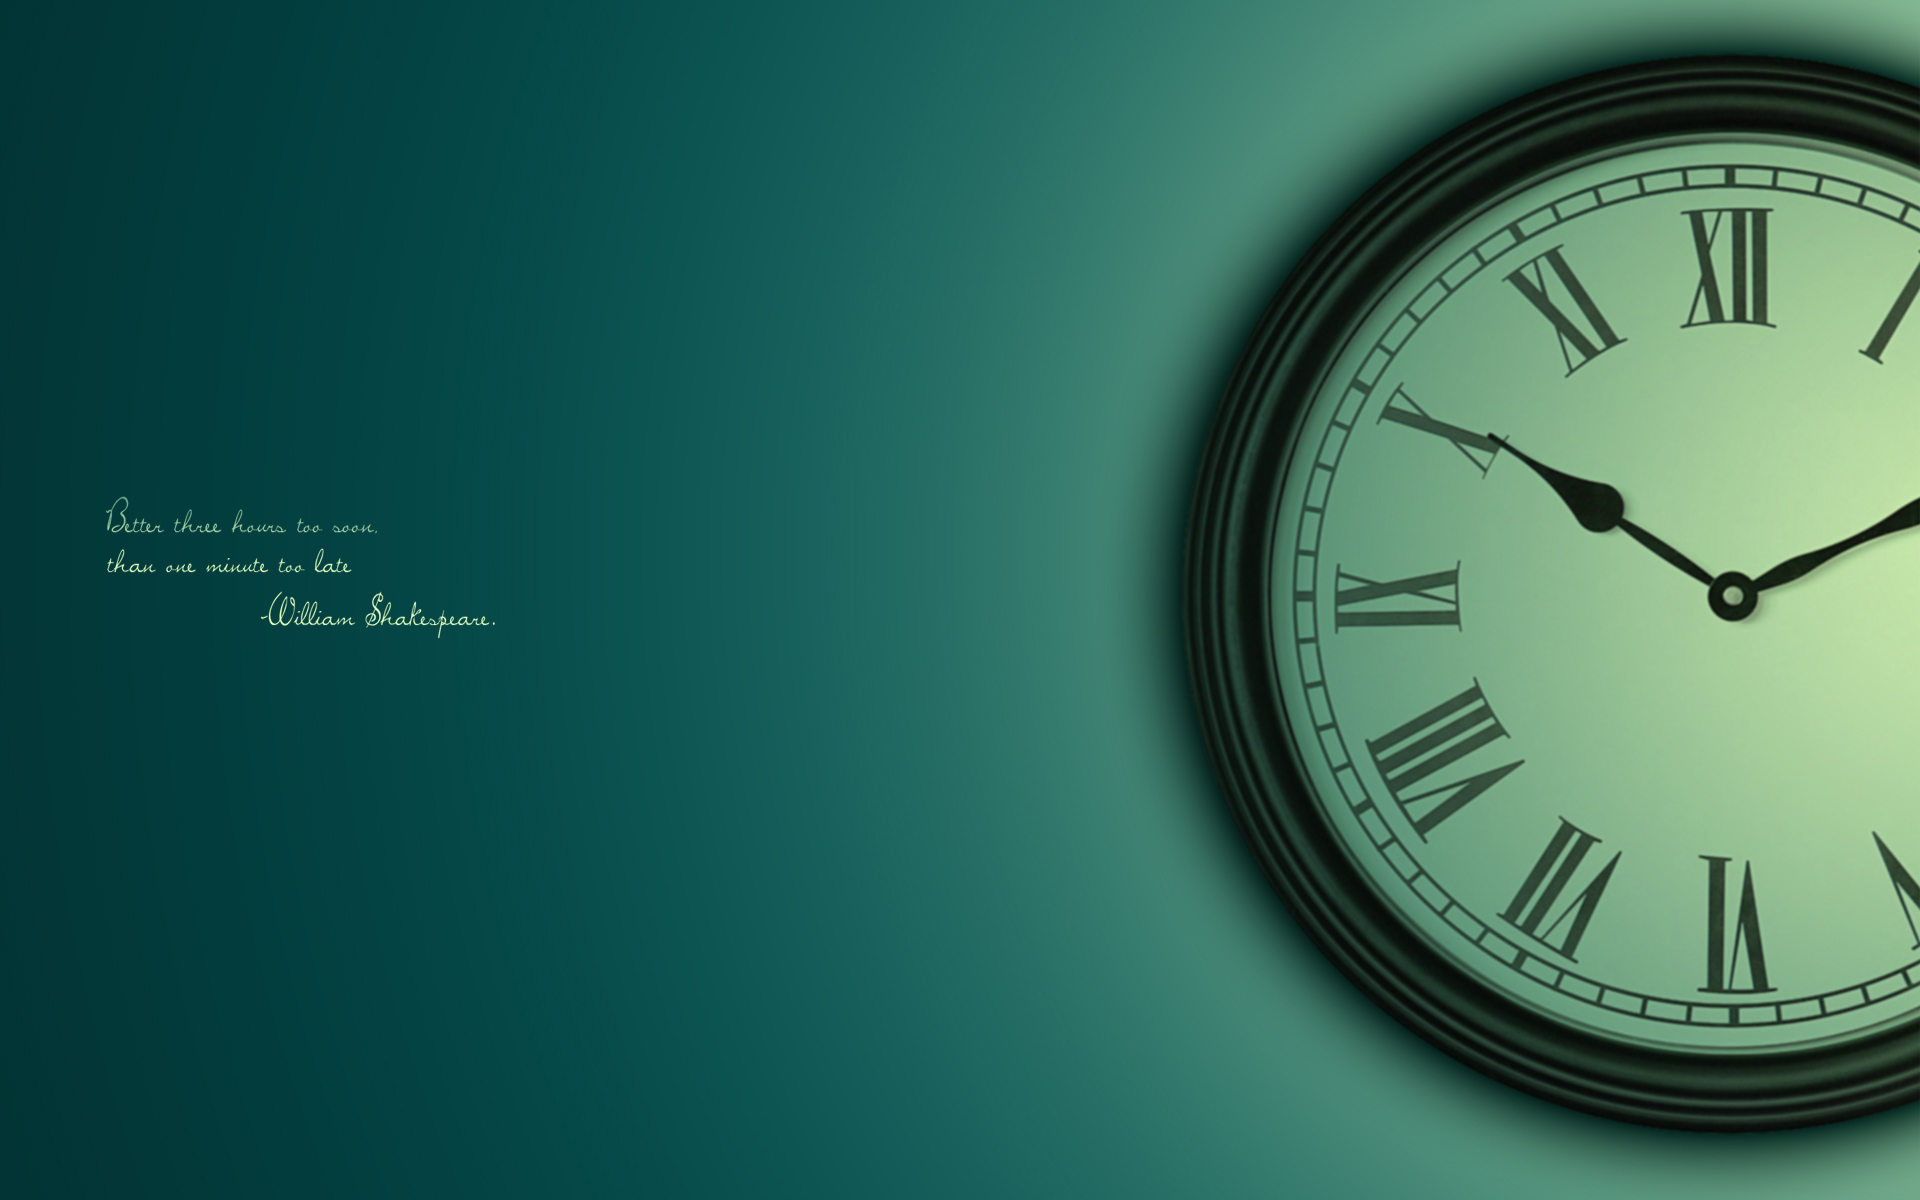 Wallpaper With Clock